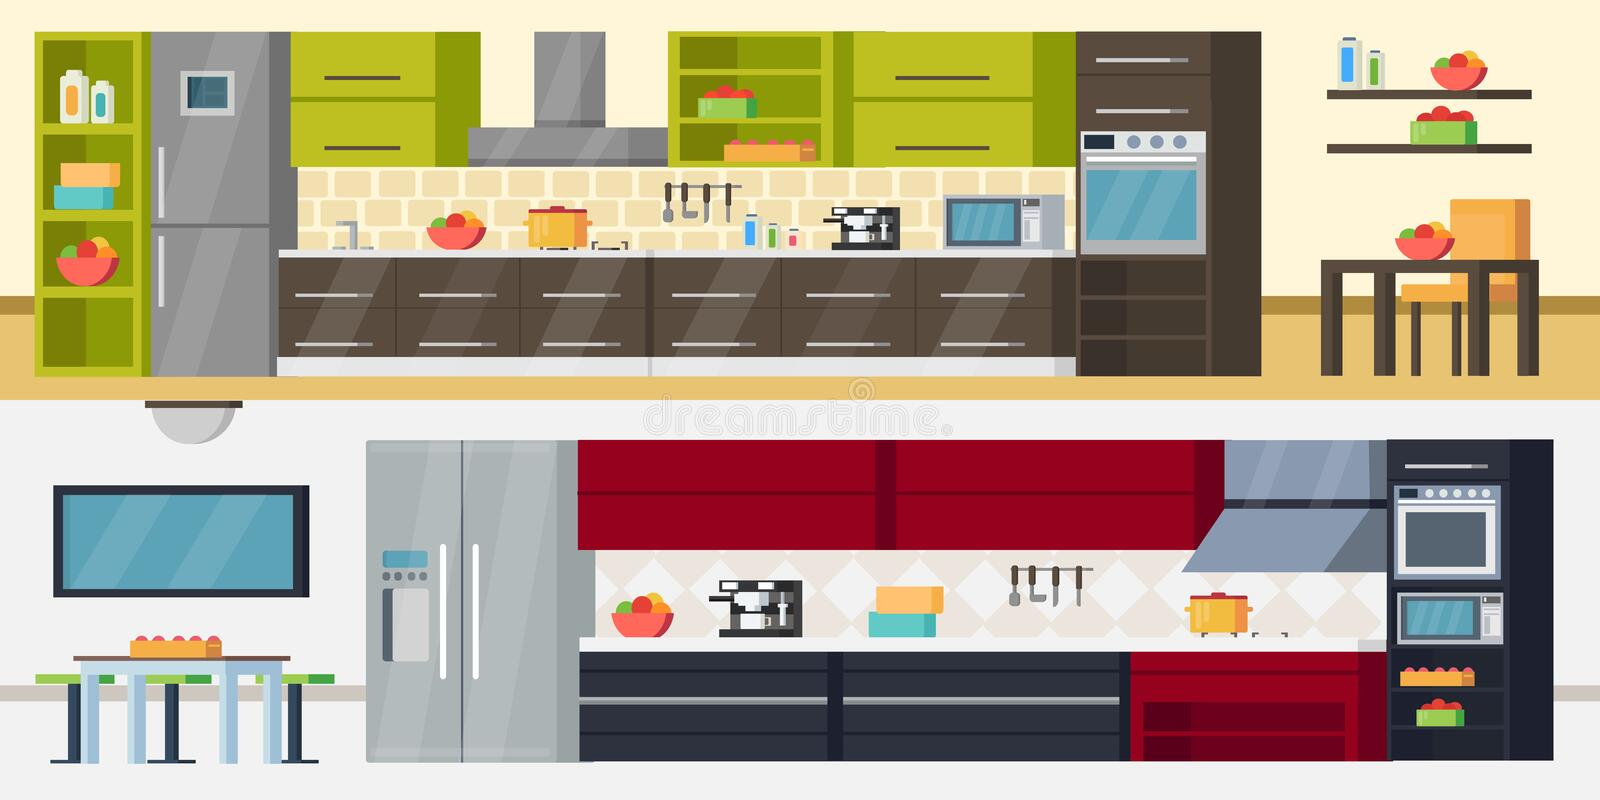 Modern Kitchen Horizontal Banners. With furniture appliances and accessories for modern interior design project vector illustration royalty free illustration